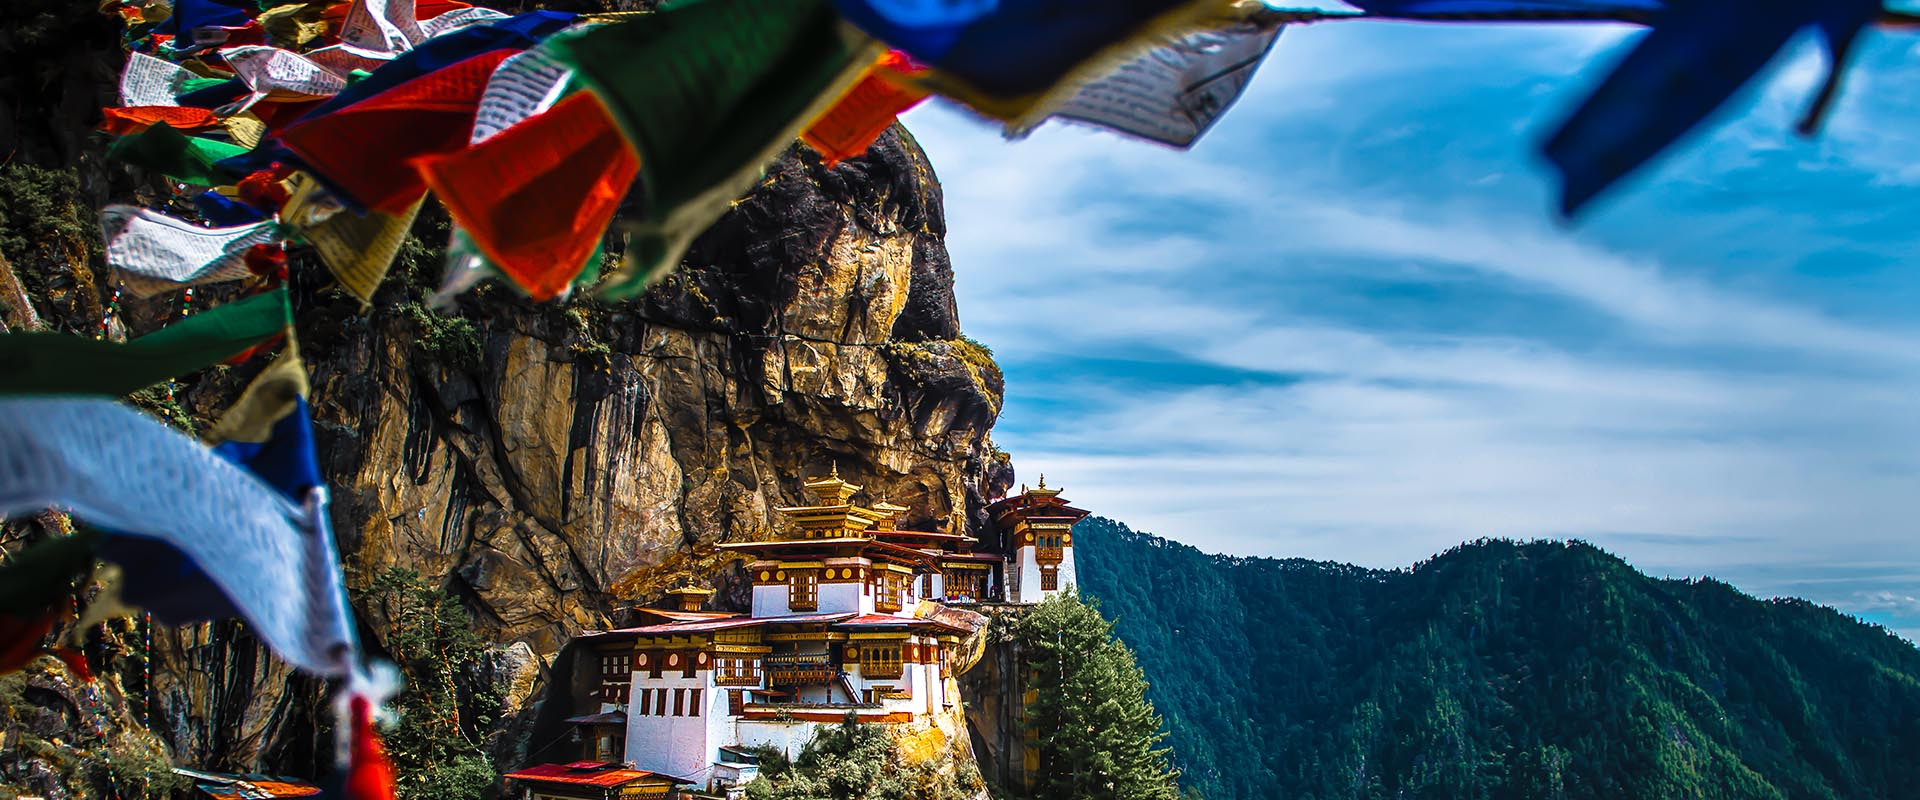 Trek to famous Tiger's Nest with Bhutan Tour Package of North Bengal Tourism